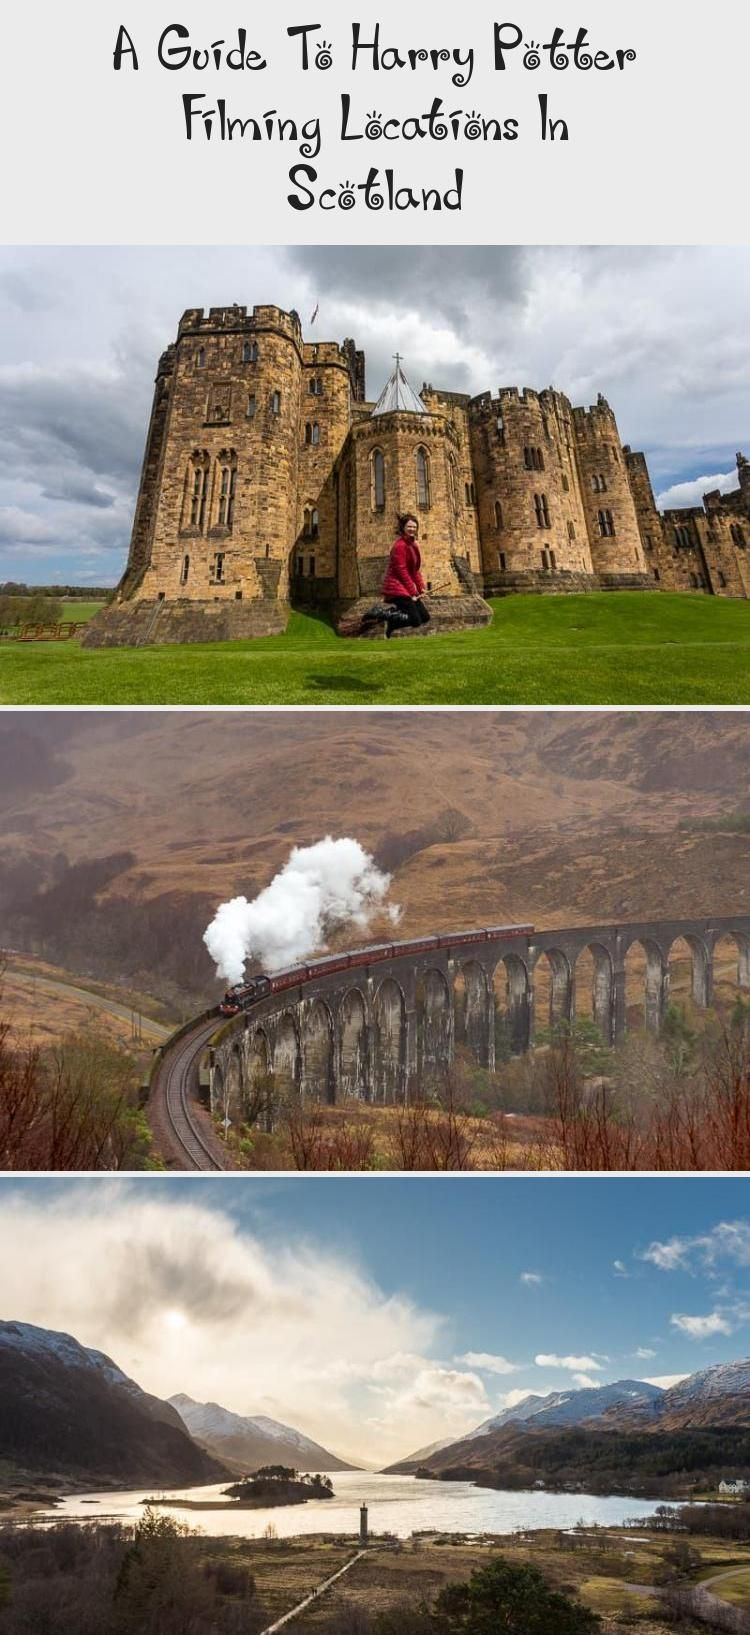 A Guide To Harry Potter Filming Locations In Scotland In 2020 With Images Harry Potter Filming Locations Filming Locations Movie Locations